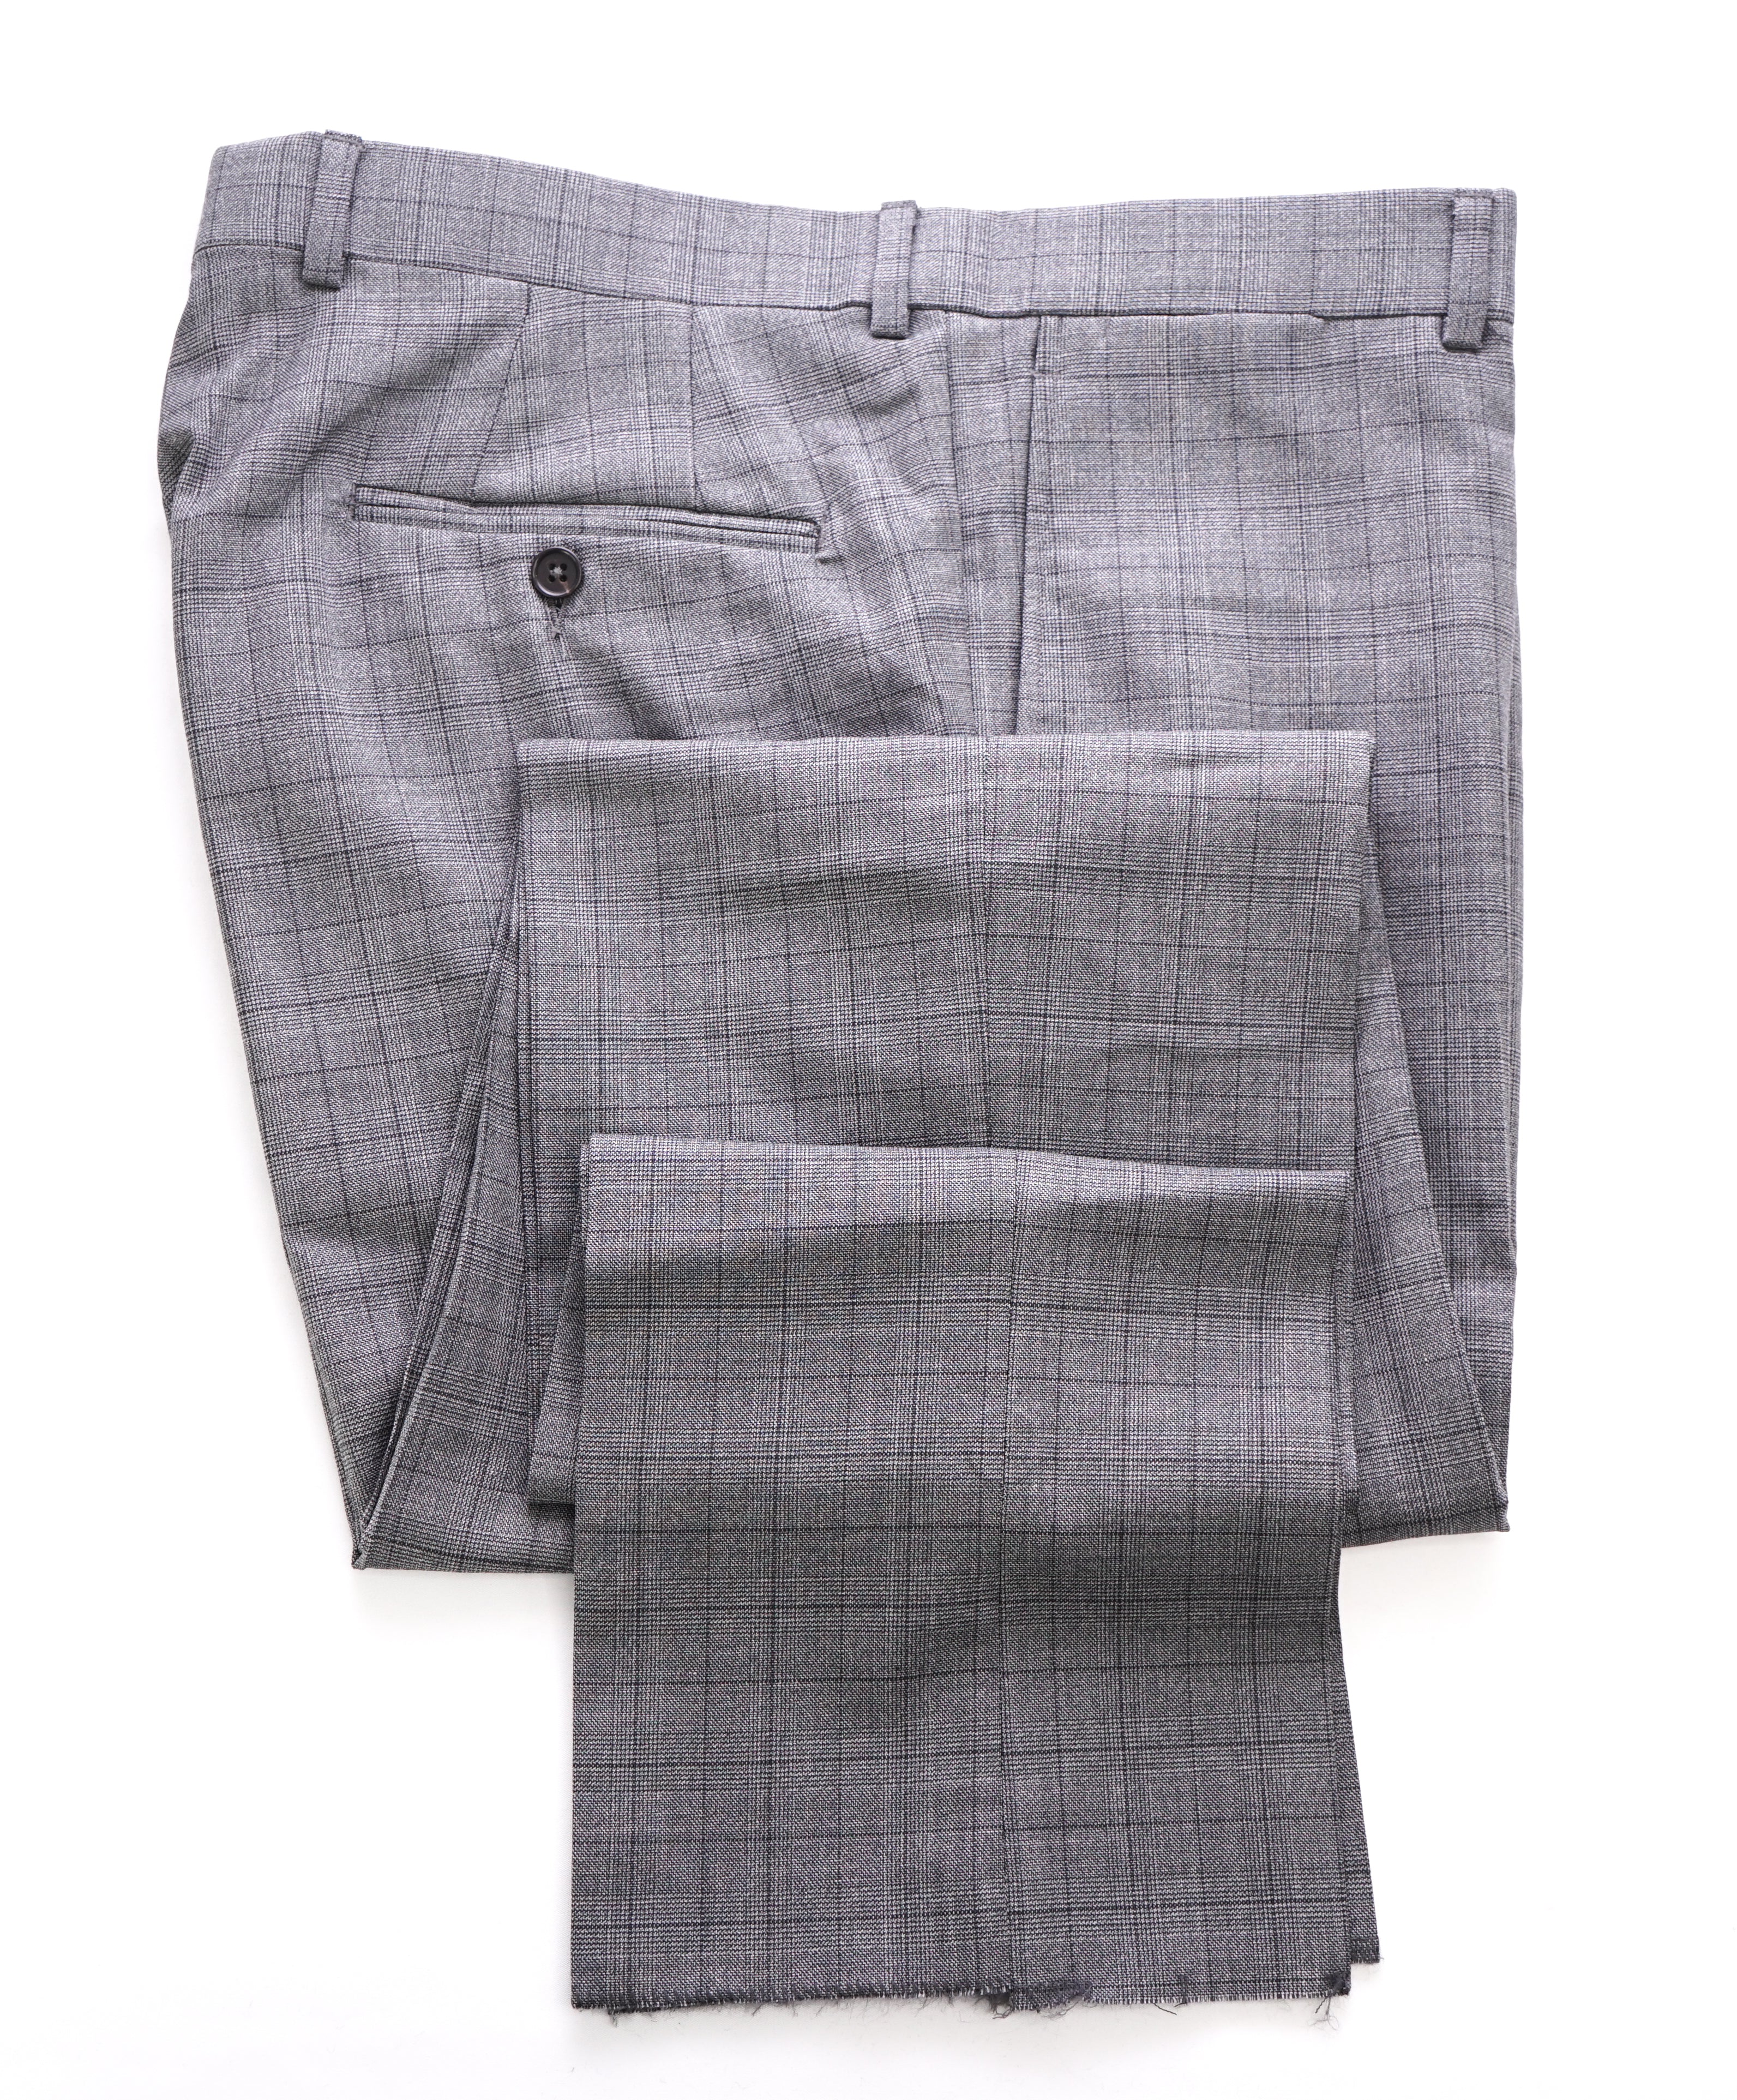 TED BAKER - Gray Prince of Wales Check Wool Flat Front Dress Pants- 35W